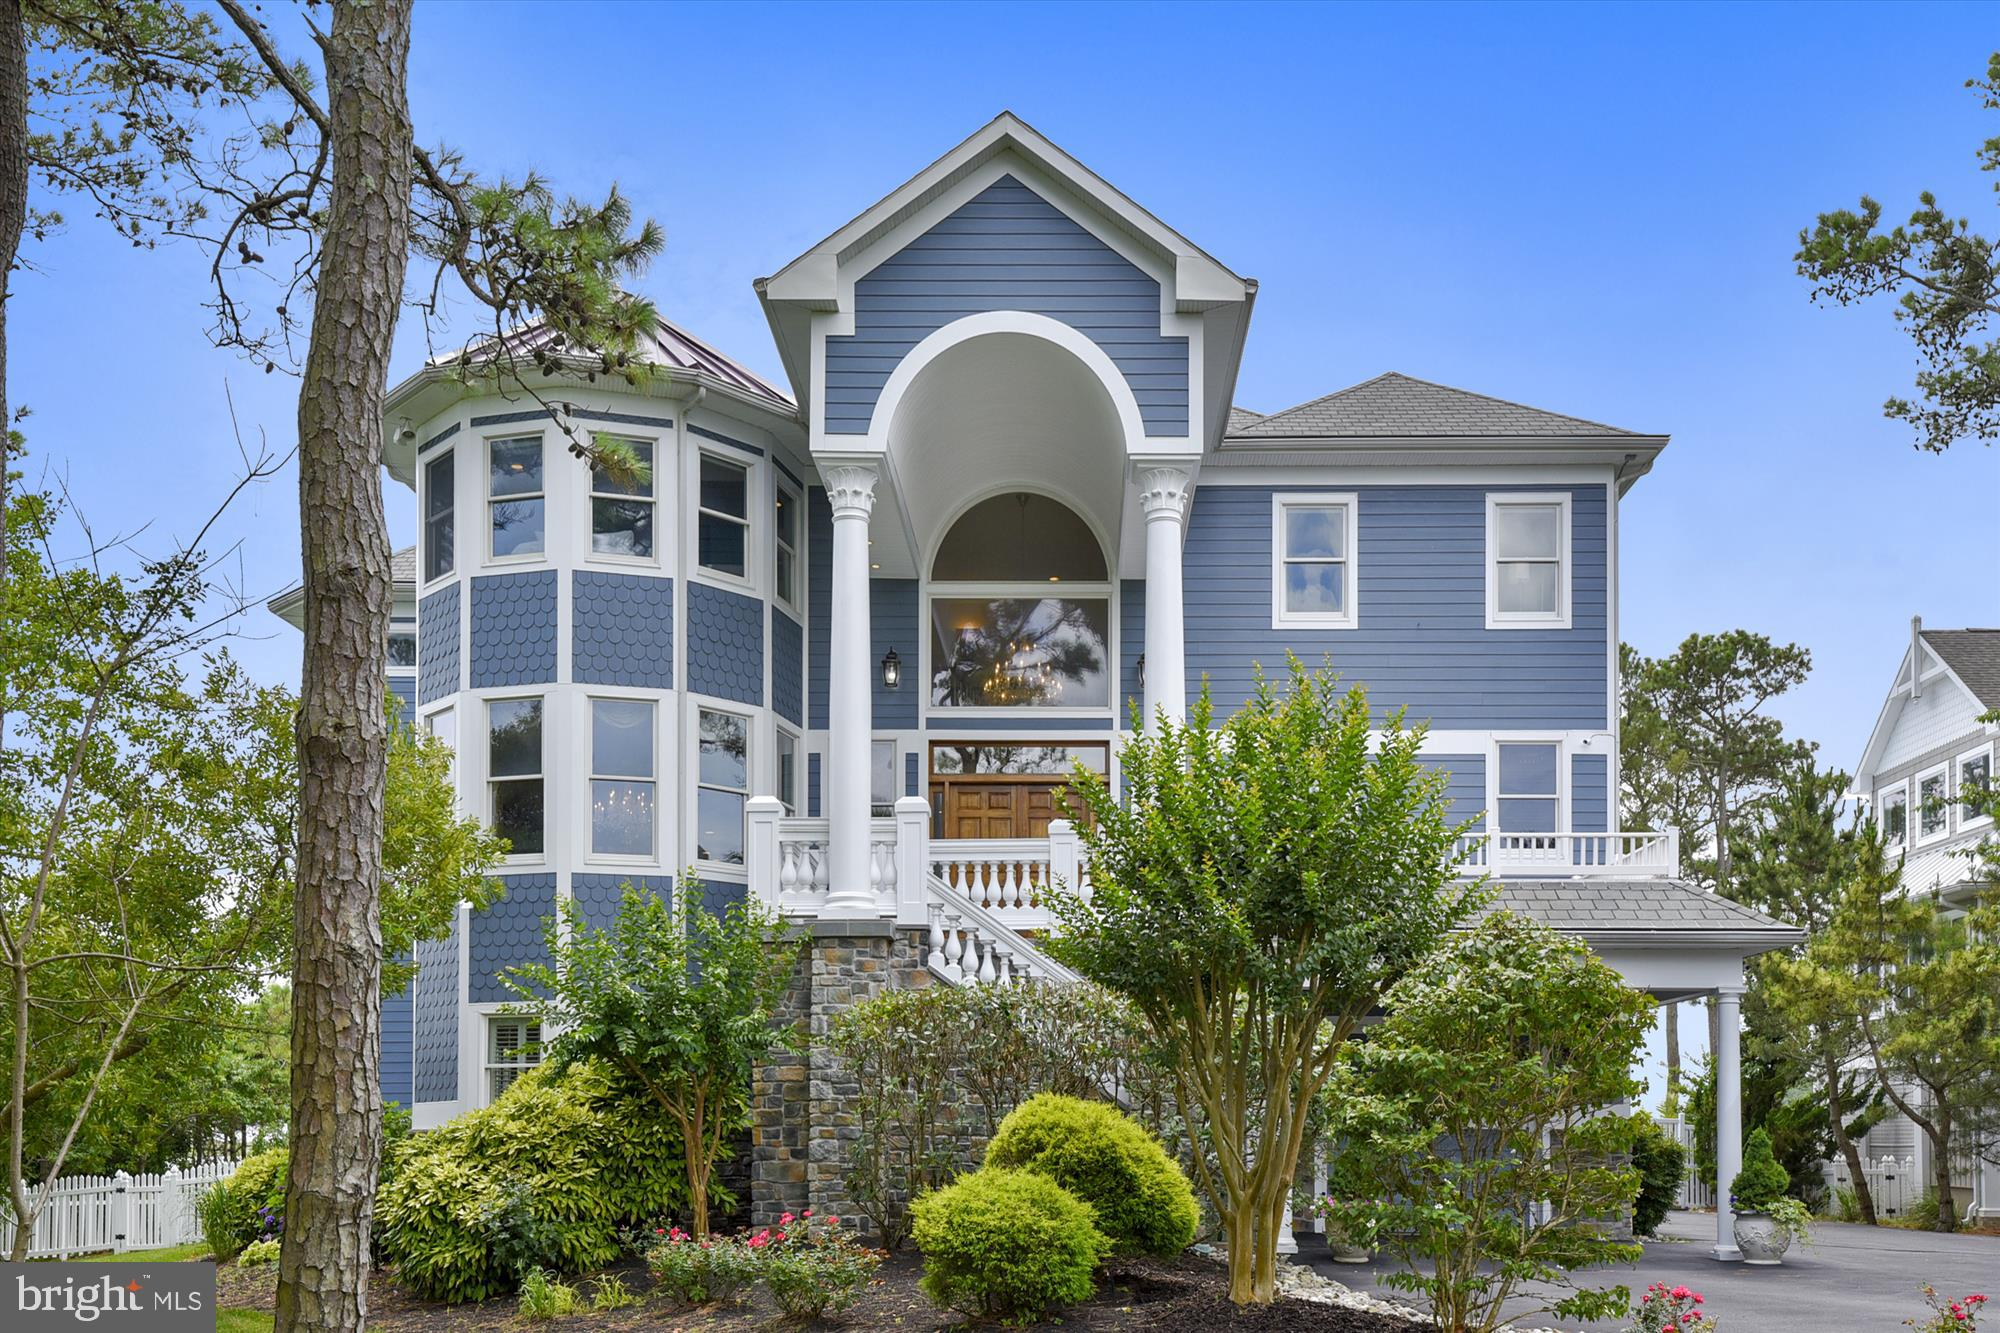 12547 OCEAN REEF DRIVE, BERLIN, MD 21811